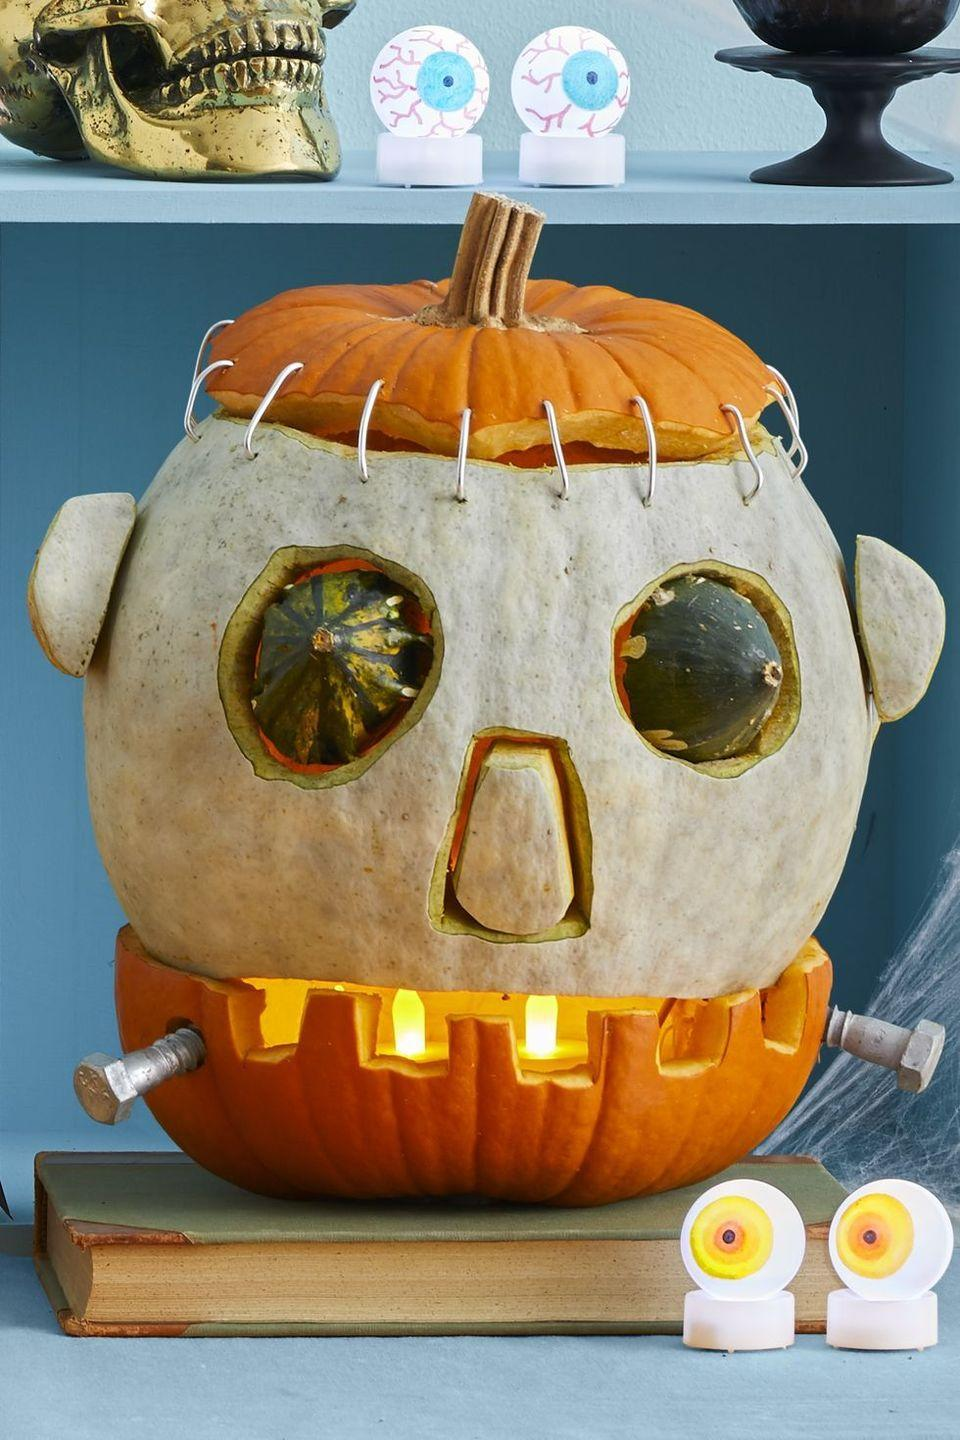 """<p>It's no surprise that the most original pumpkin carving idea on our list involves <em>four</em> different pumpkins. After carving the basic elements here, you can """"stitch up"""" your monstrous creation by poking holes in the top and threading through a few pieces of thick wire.</p><p><strong>See more at <a href=""""https://www.womansday.com/home/crafts-projects/g950/funny-pumpkin-carving-ideas/?slide=4"""" rel=""""nofollow noopener"""" target=""""_blank"""" data-ylk=""""slk:Woman's Day"""" class=""""link rapid-noclick-resp"""">Woman's Day</a>.</strong></p><p><a class=""""link rapid-noclick-resp"""" href=""""https://go.redirectingat.com?id=74968X1596630&url=https%3A%2F%2Fwww.walmart.com%2Fsearch%2F%3Fquery%3Dmetal%2Bhardware&sref=https%3A%2F%2Fwww.thepioneerwoman.com%2Fhome-lifestyle%2Fcrafts-diy%2Fg36982763%2Fpumpkin-carving-ideas%2F"""" rel=""""nofollow noopener"""" target=""""_blank"""" data-ylk=""""slk:SHOP METAL HARDWARE"""">SHOP METAL HARDWARE</a></p>"""